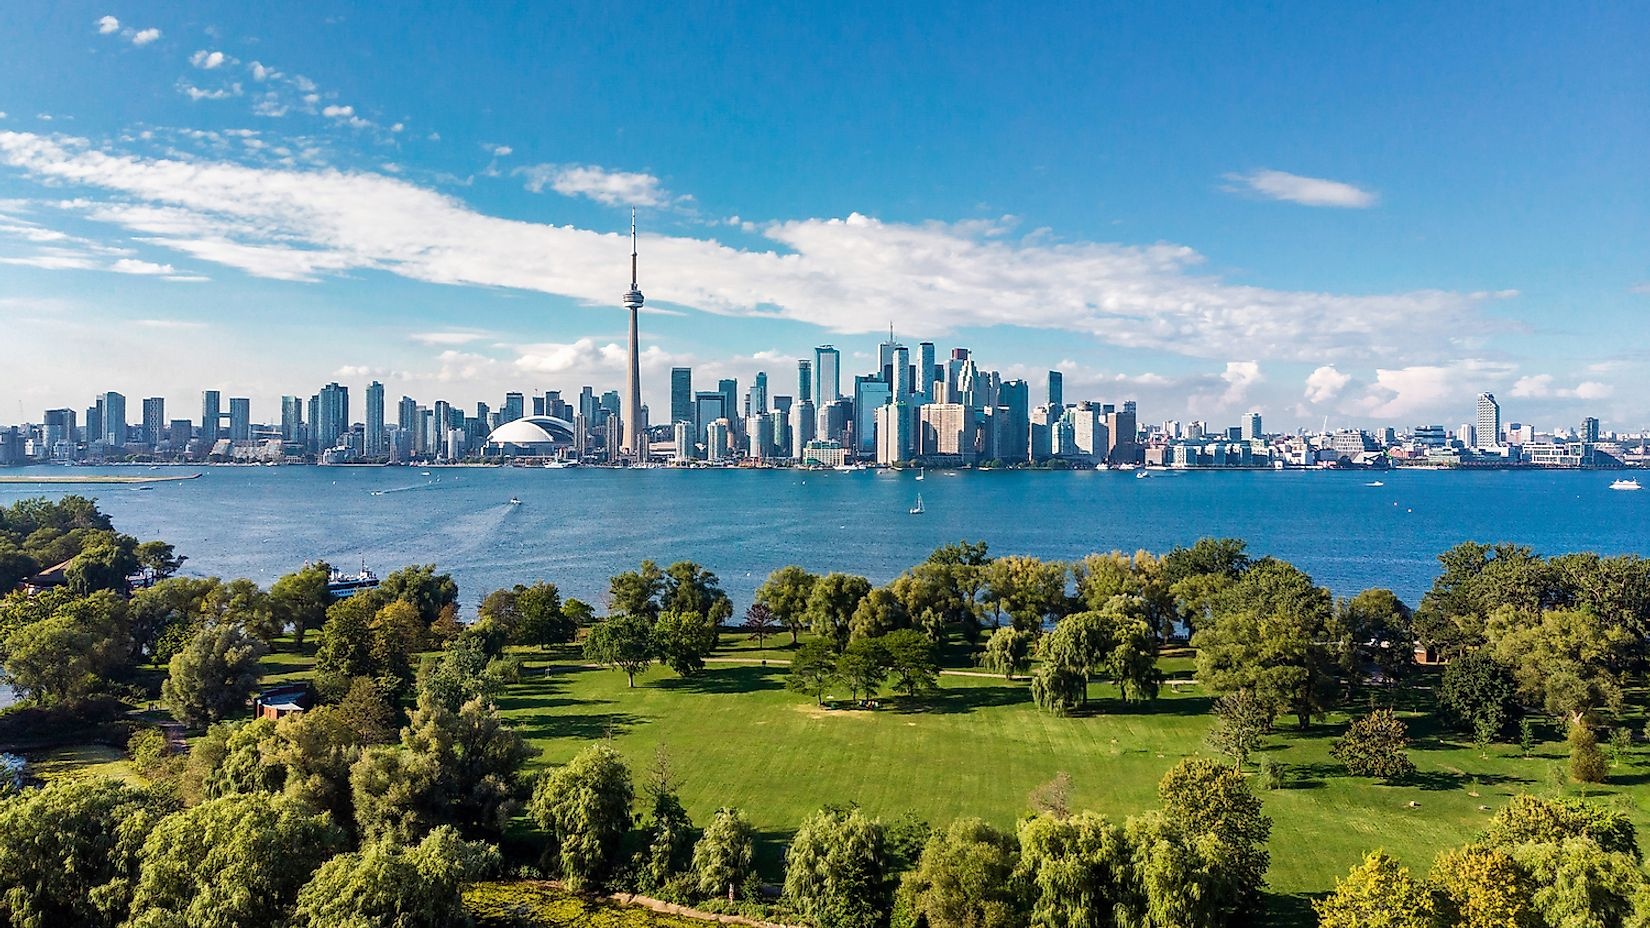 Skyline of Toronto, Canada along the shores of Lake Ontario. Image credit: R.M. Nunes/Shutterstock.com